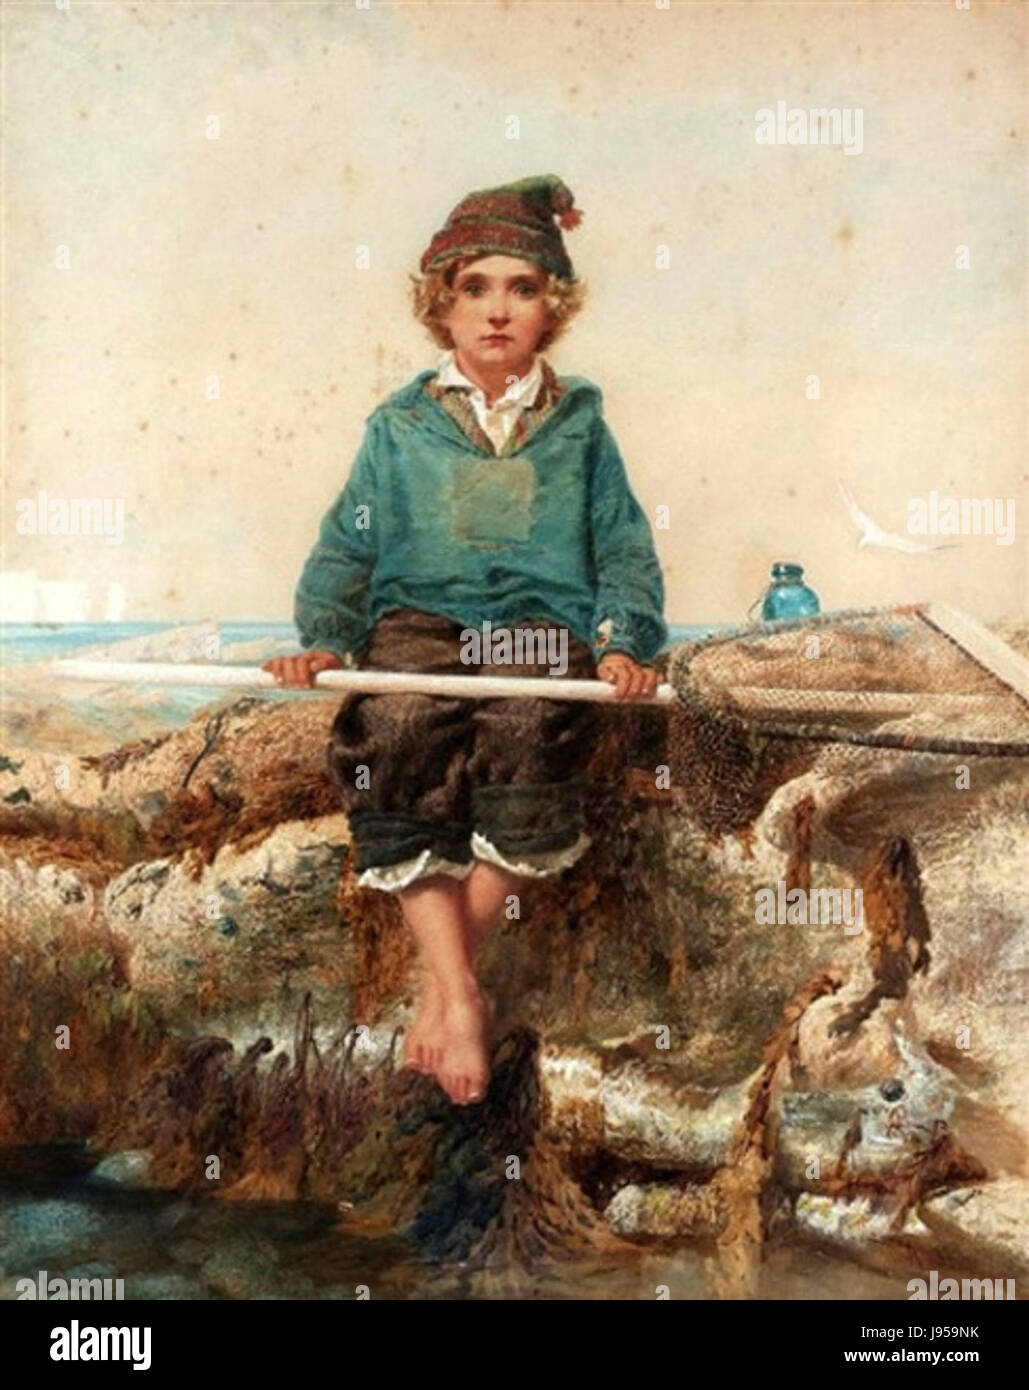 The Little Shrimper by Alfred Downing Fripp - Stock Image